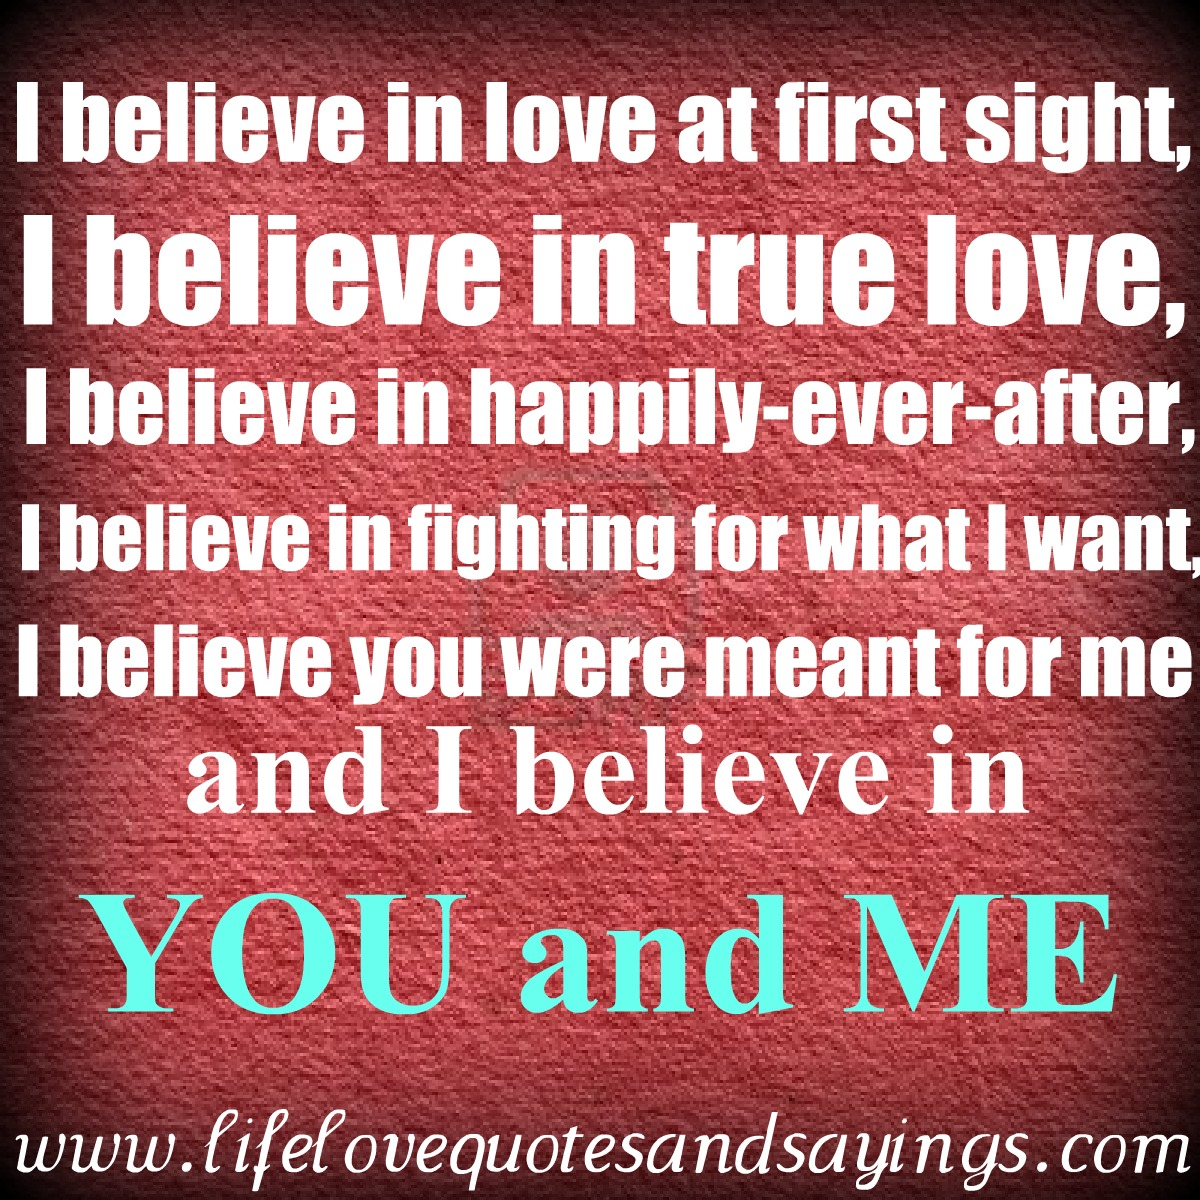 Quotes About Love At First Site Adorable Famous Quotes About 'love At First Sight'  Sualci Quotes